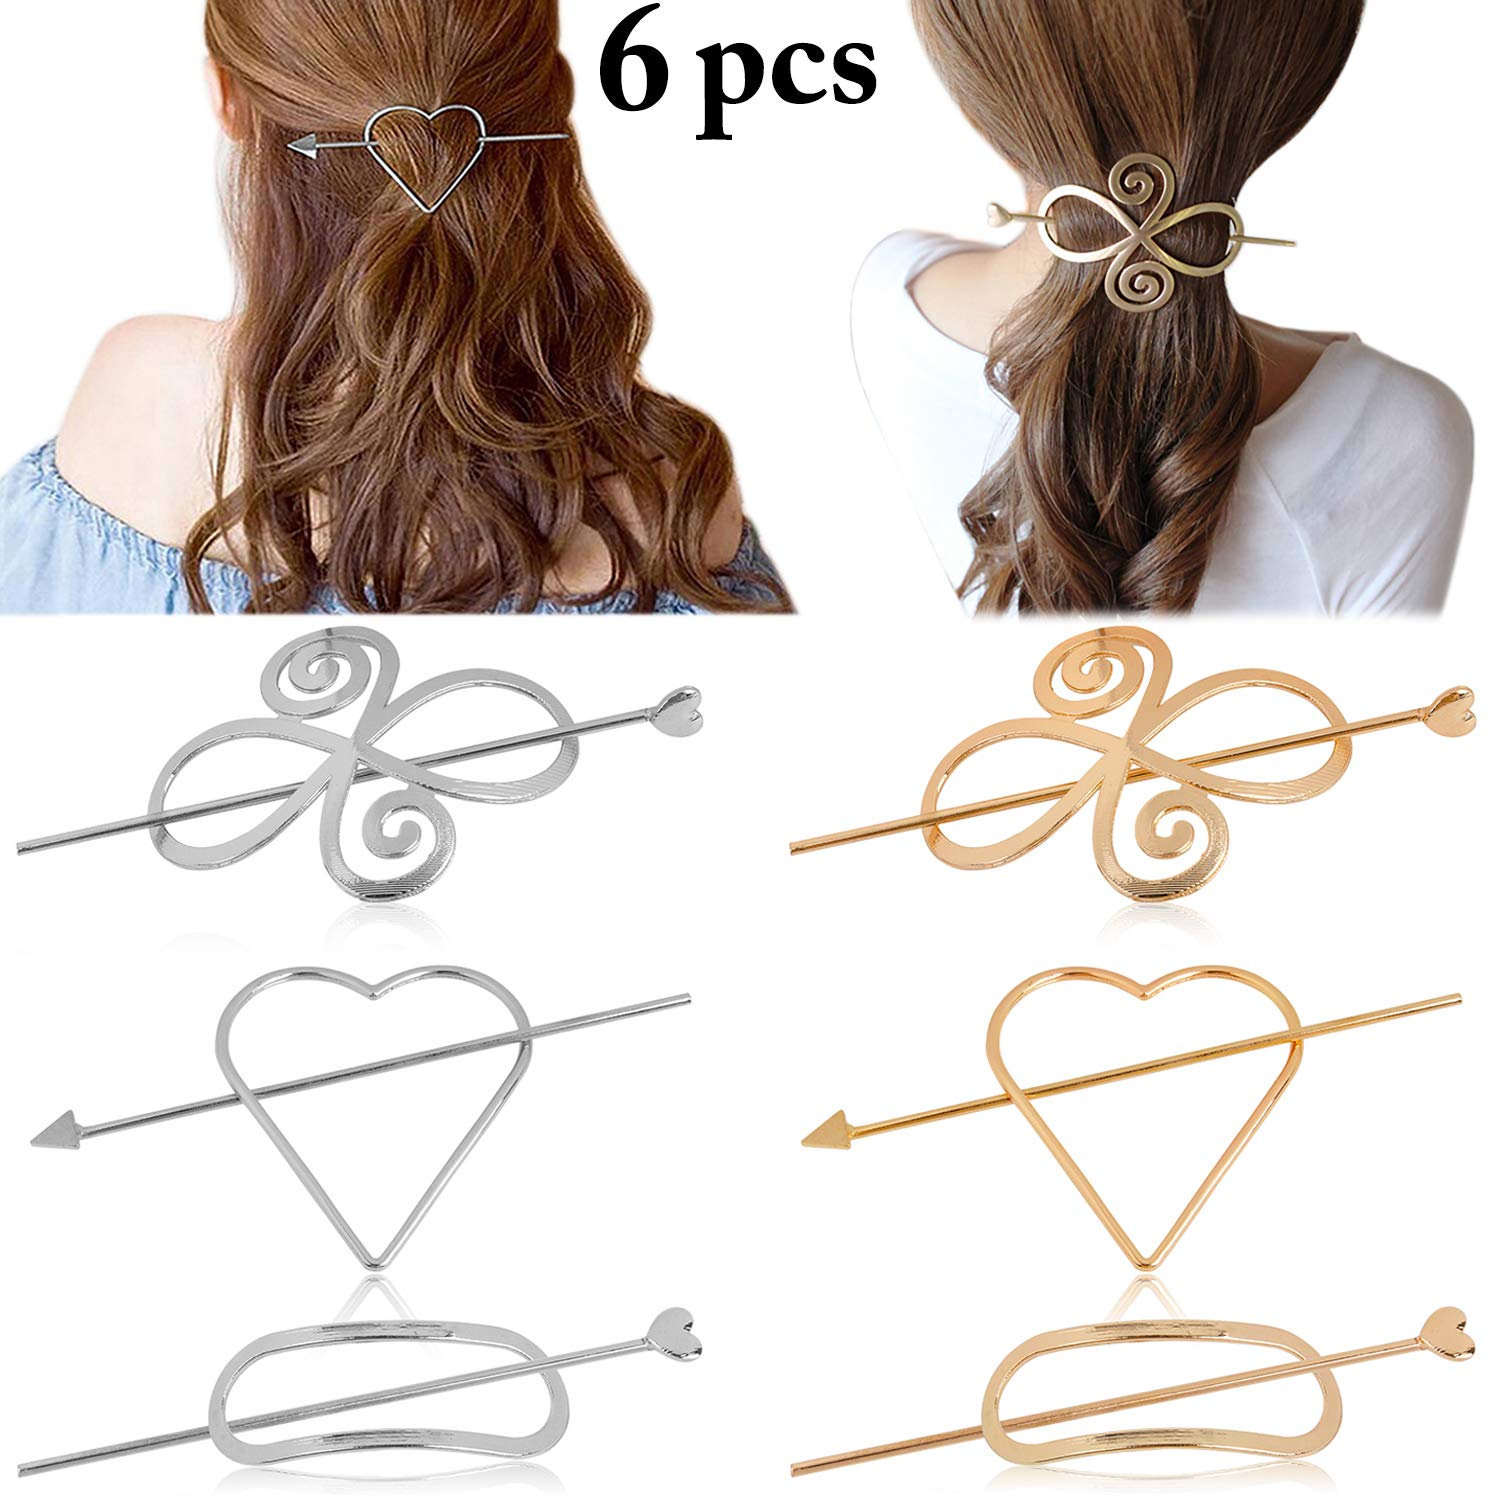 Women Hairpins, Fascigirl 6 PCS Assorted Creative Alloy Geometric Dainty Hair Barrette Hair Pin Hair Styling Accessories Hair Clips for Women Girls